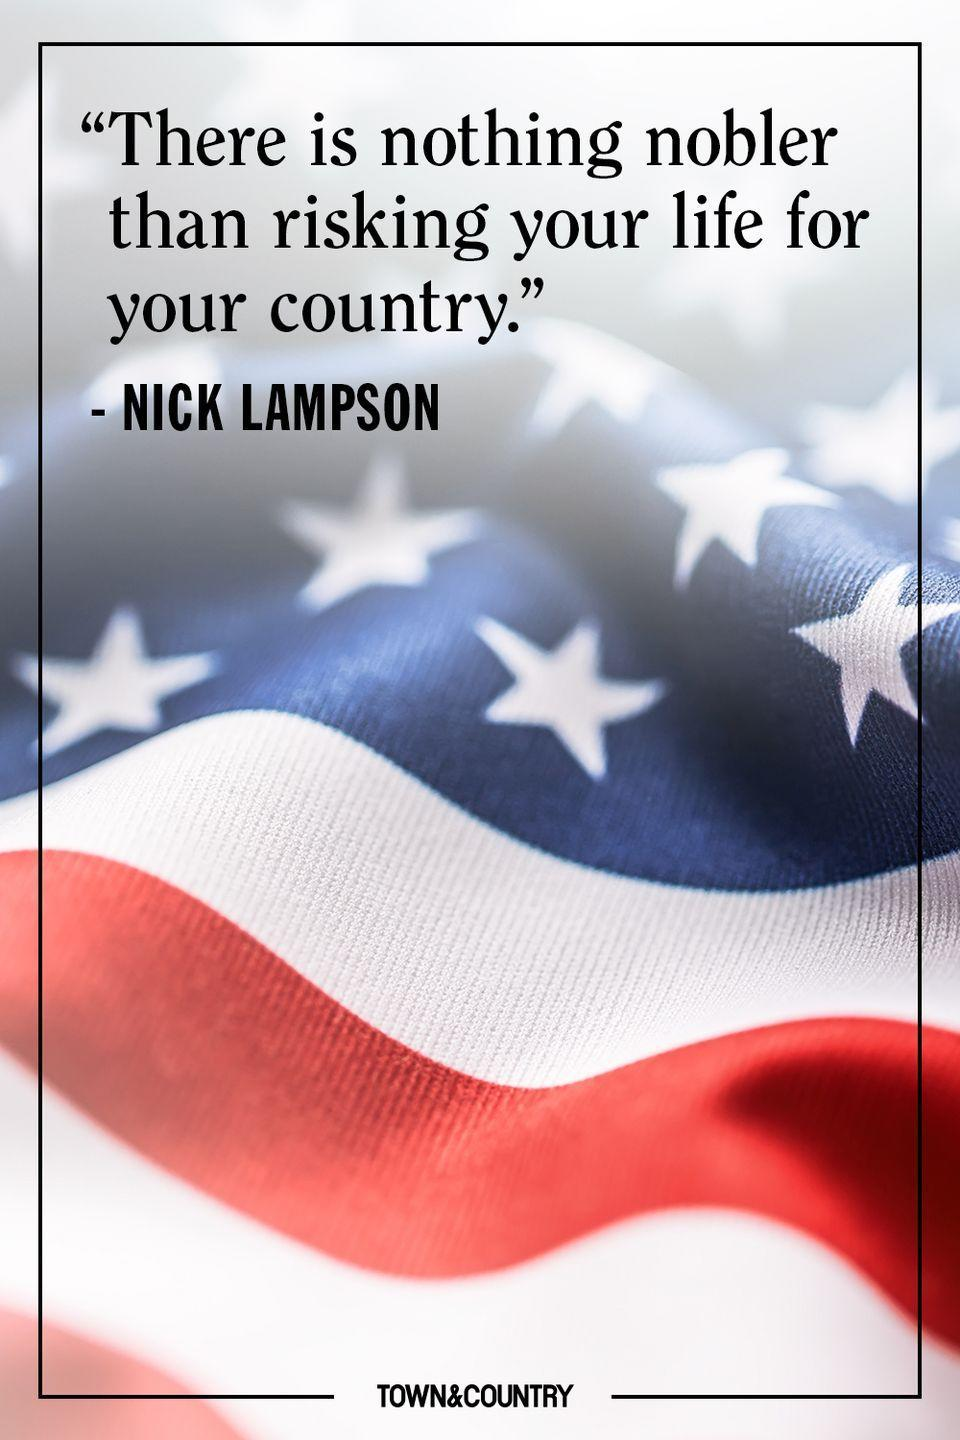 "<p>""There is nothing nobler than risking your life for your country.""</p><p>– Nick Lampson</p>"